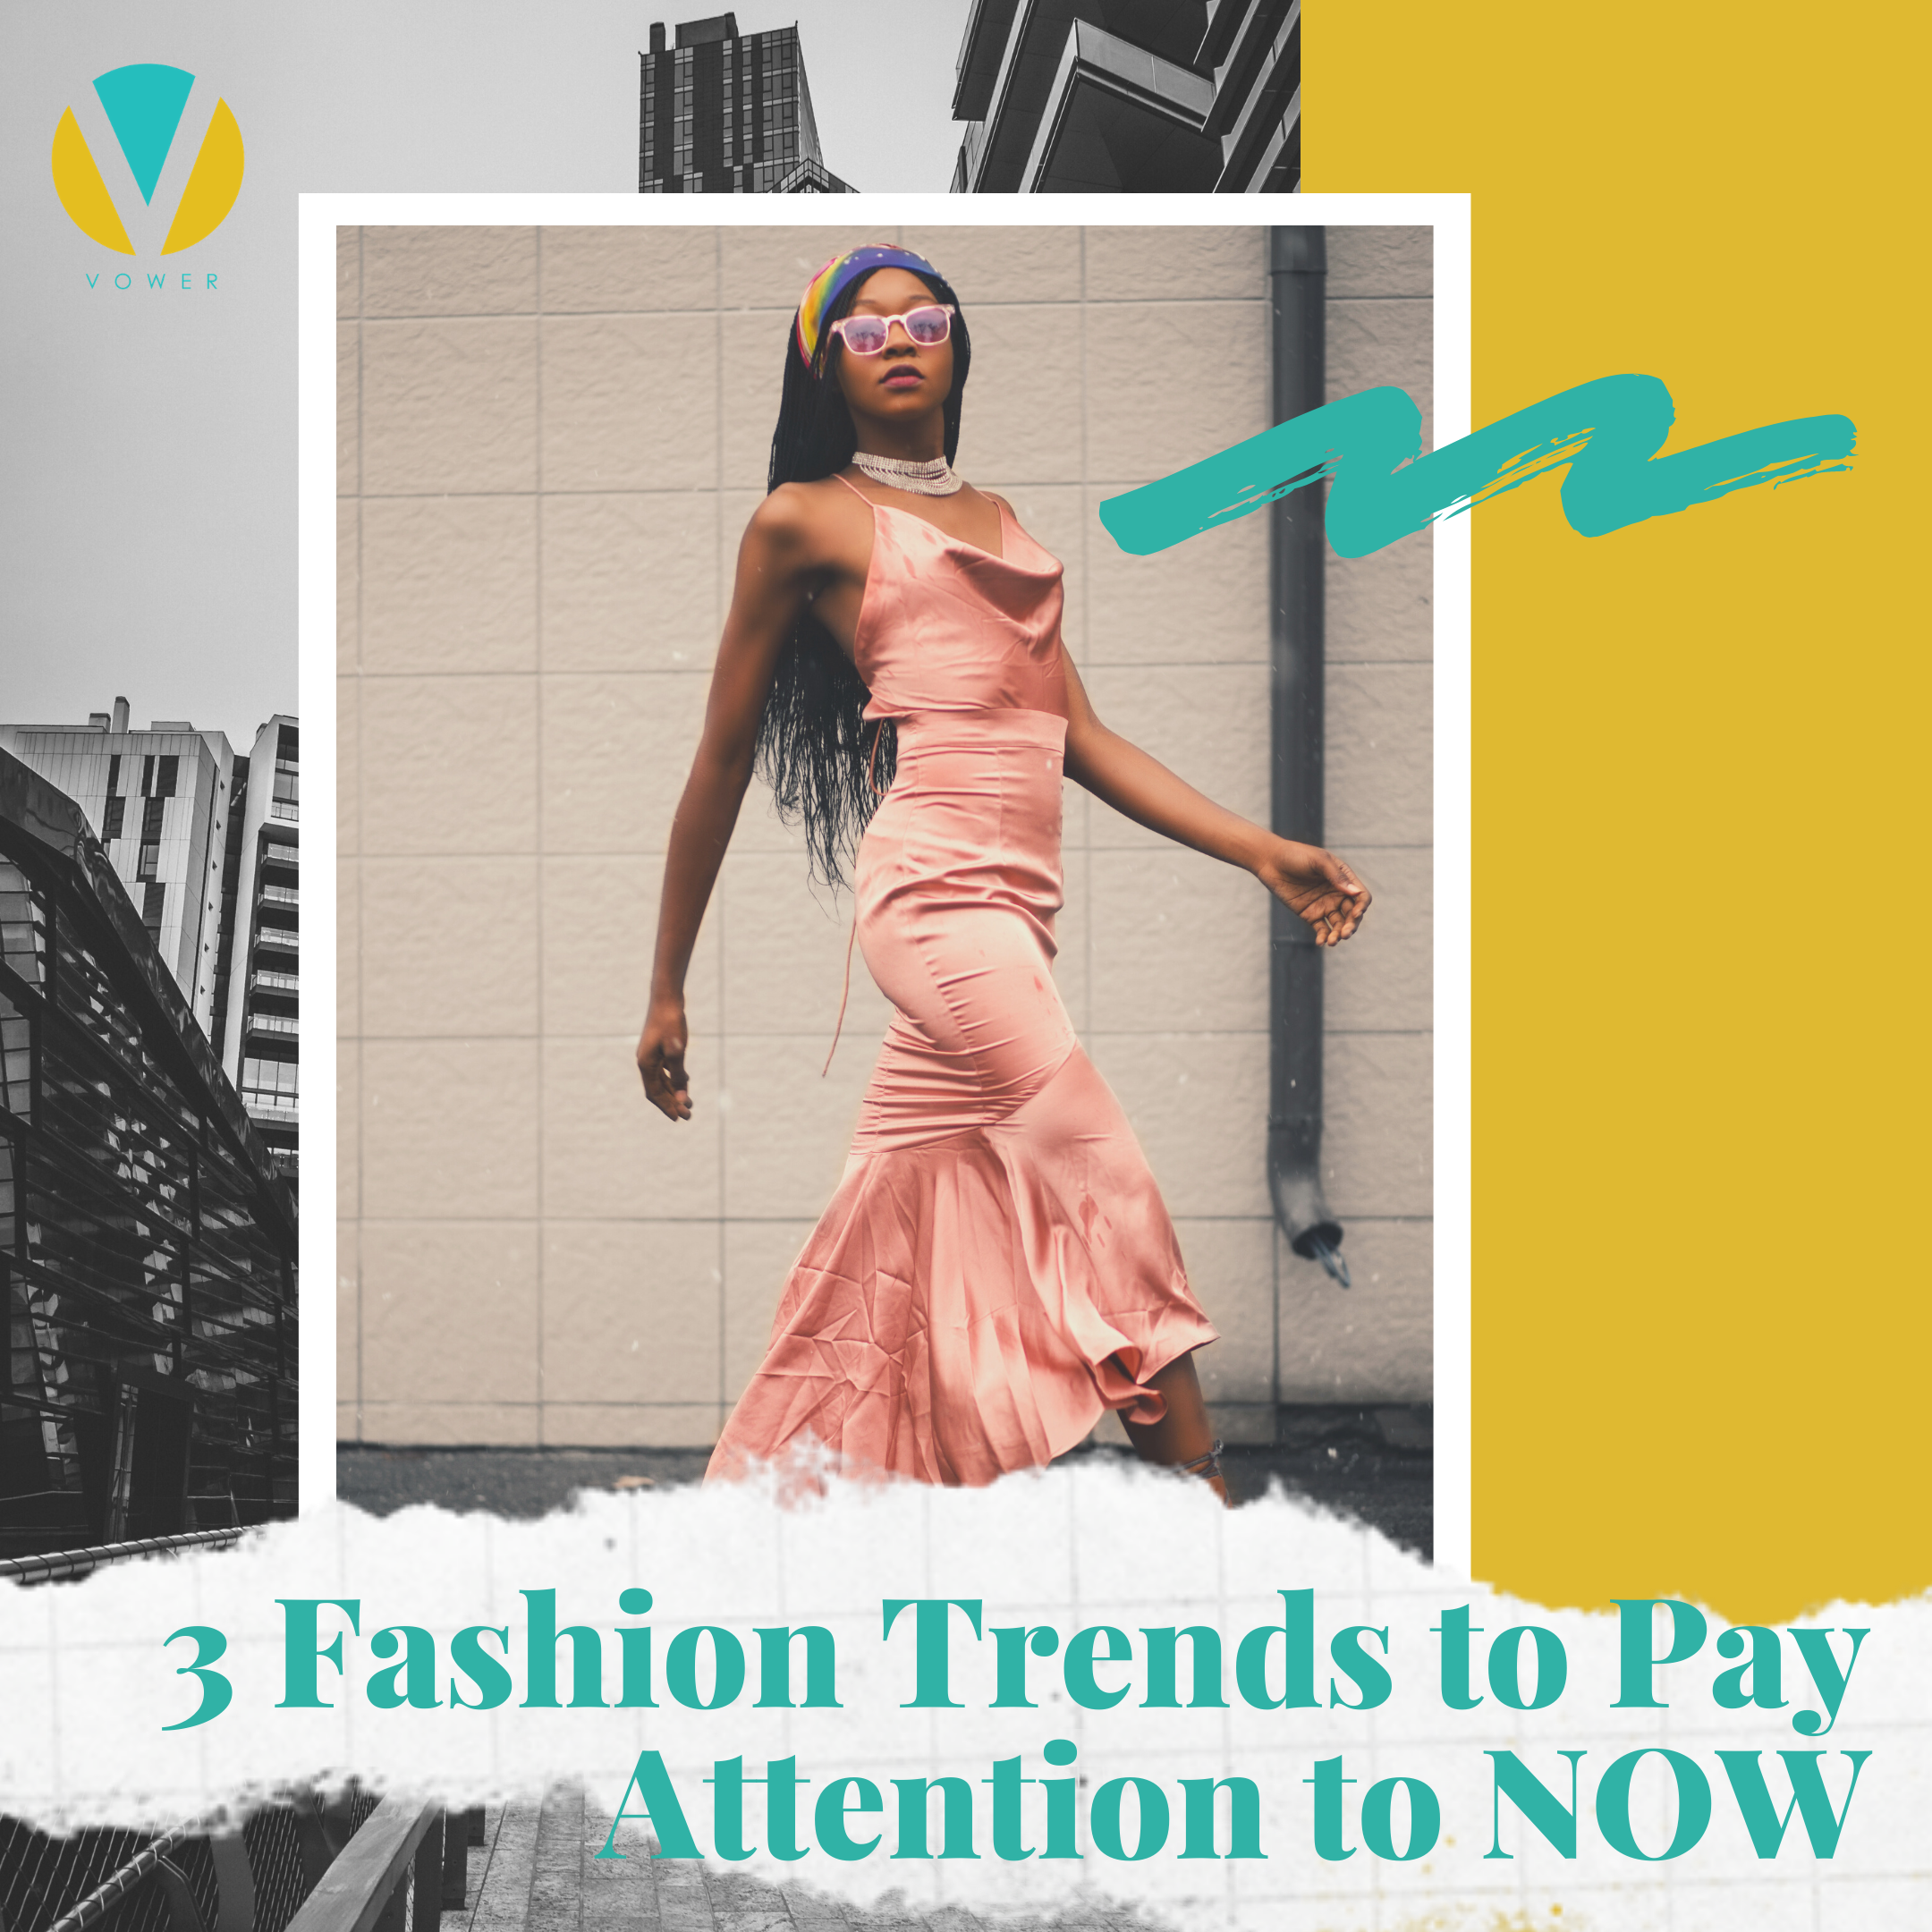 3 Fashion Trends to Pay Attention to!